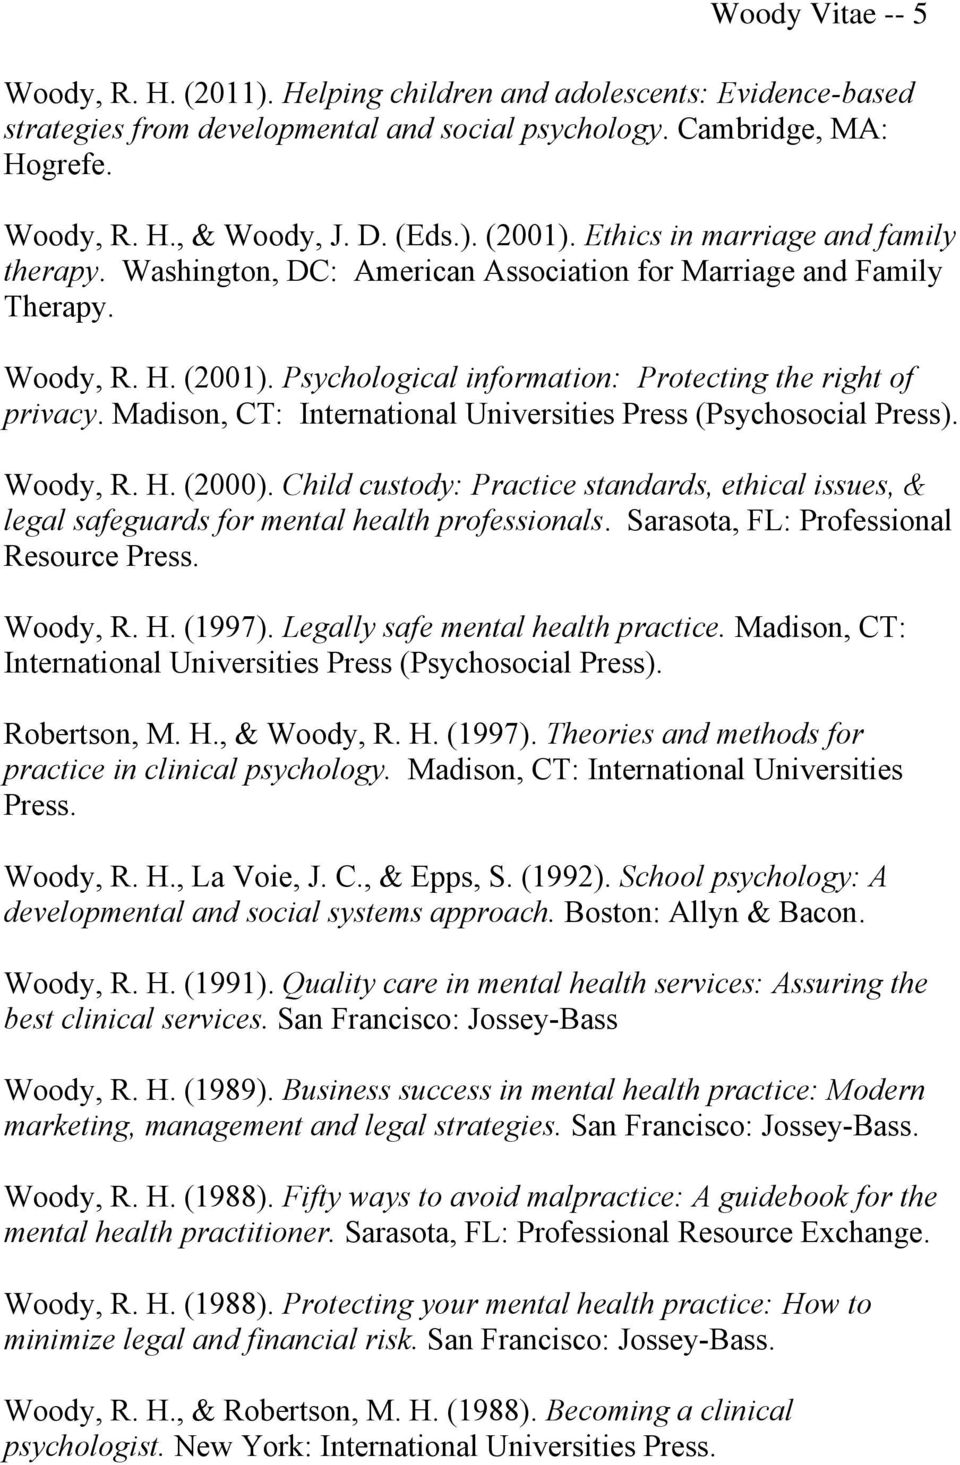 Madison, CT: International Universities Press (Psychosocial Press). Woody, R. H. (2000). Child custody: Practice standards, ethical issues, & legal safeguards for mental health professionals.